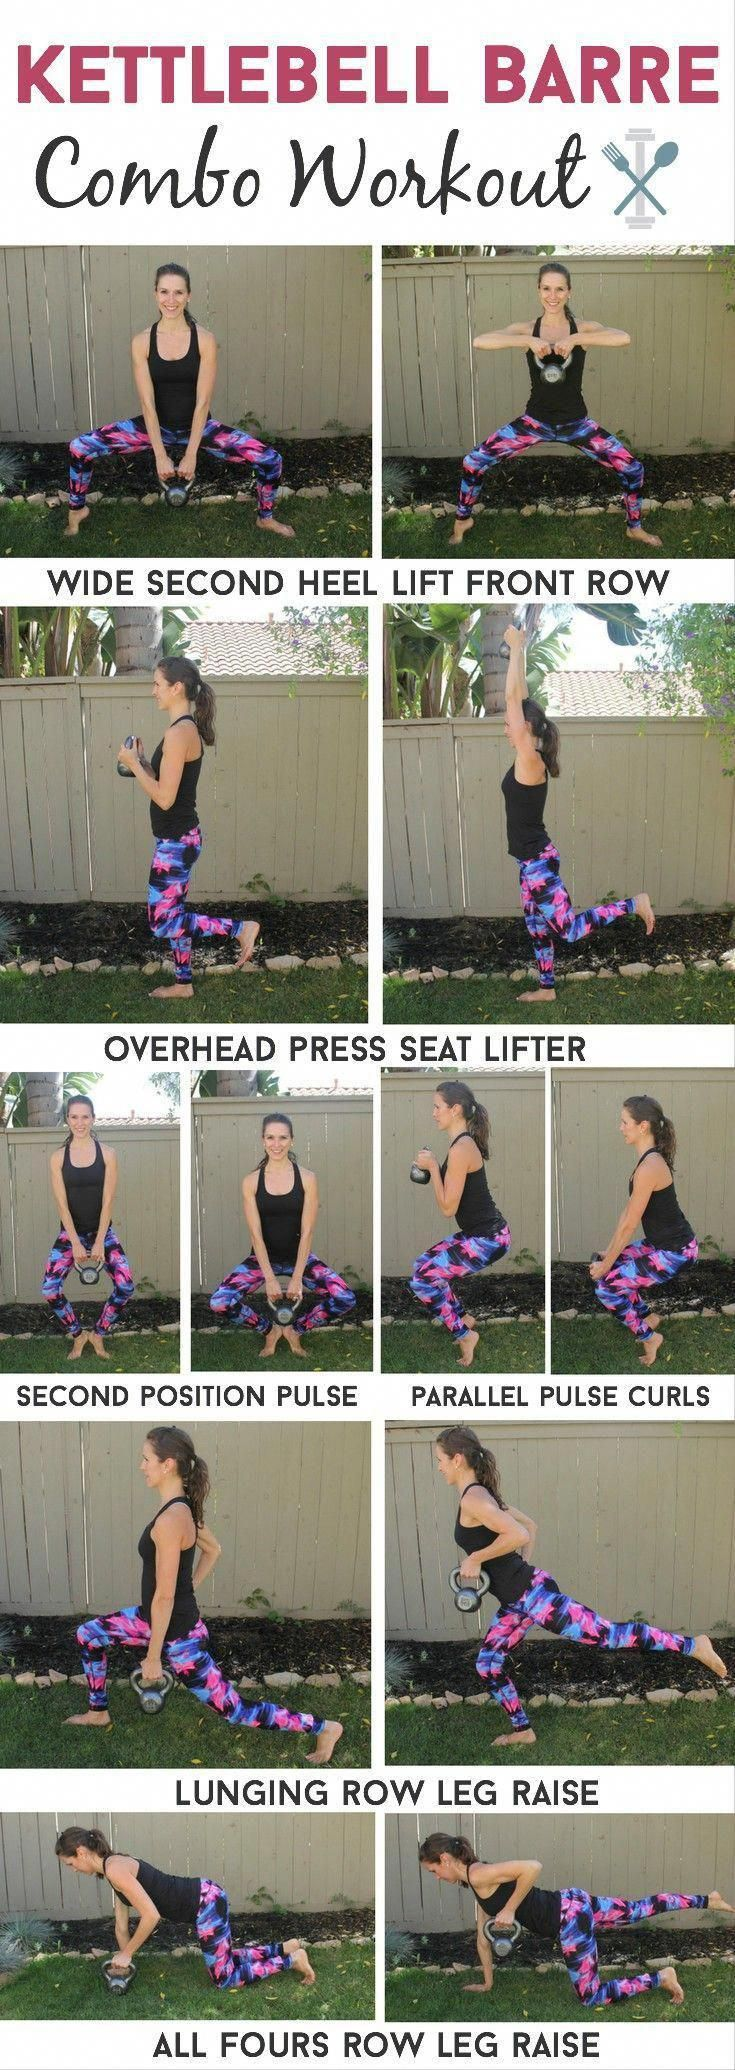 Pin by Elizabeth Dietz on Exercise (With images